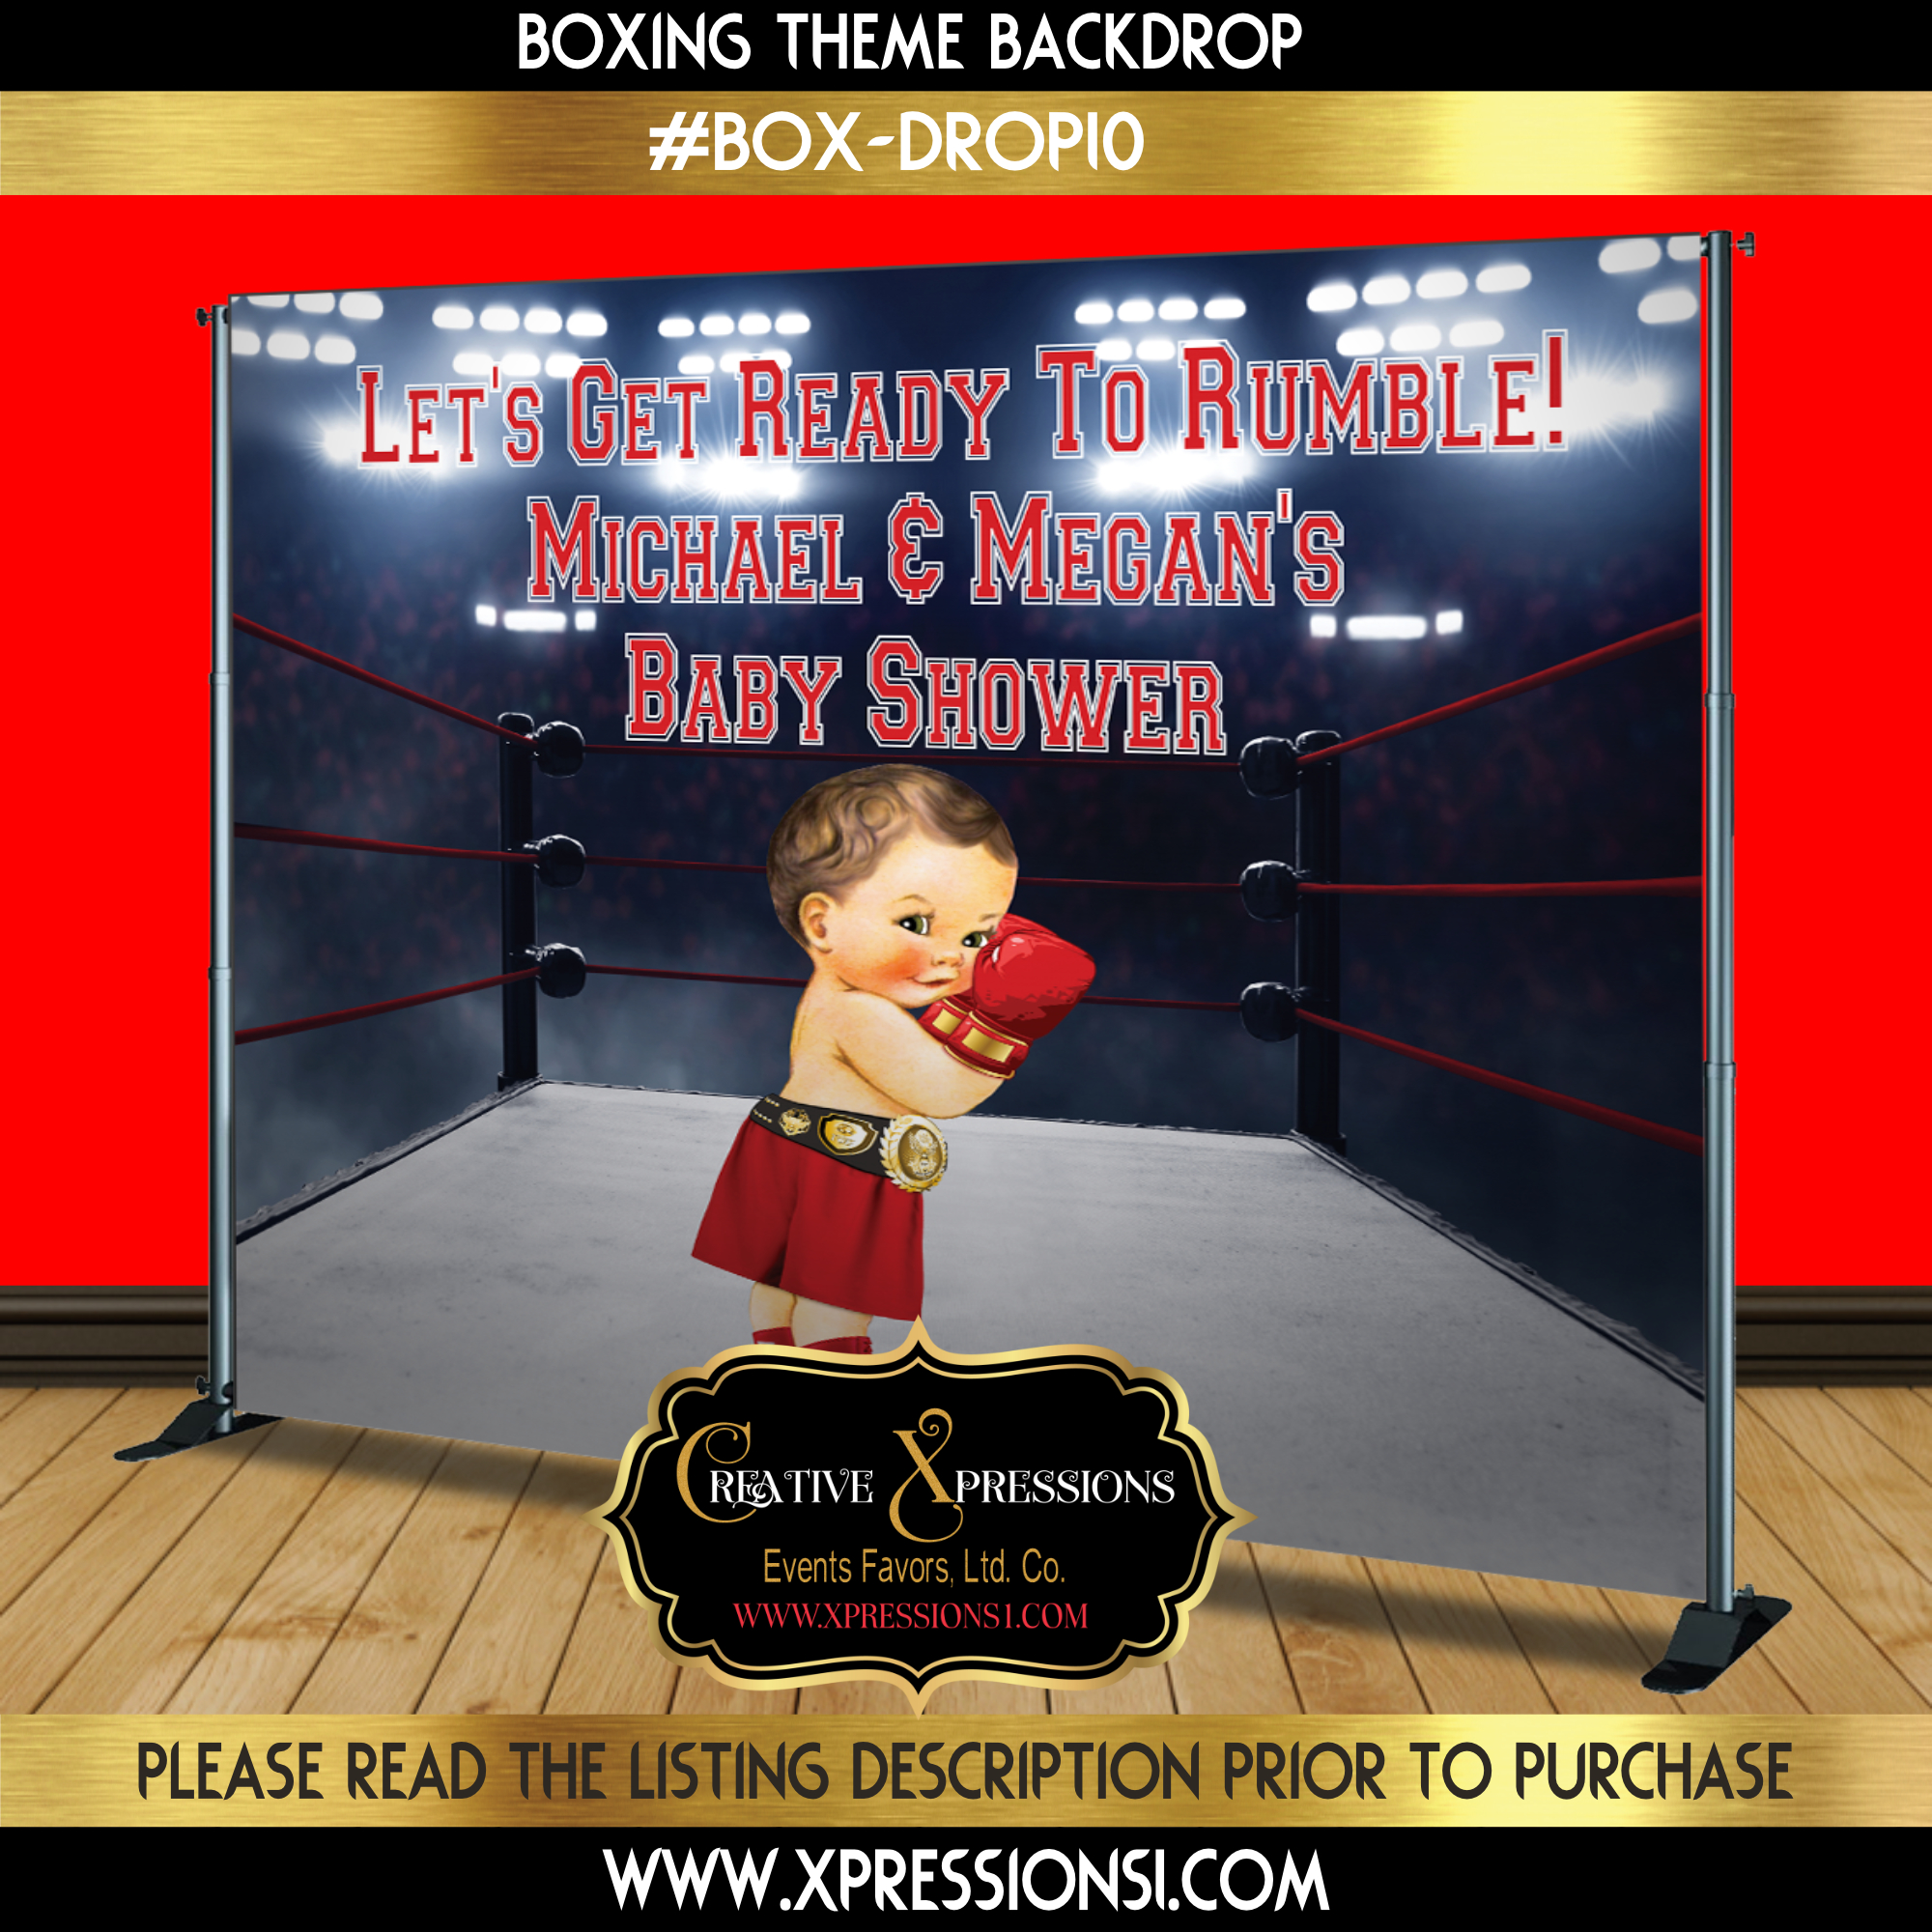 Boxer Boxing Champ Sports Baby Shower Red Gold Black Blue Backdrop Banner 4x4 Foot Printable PDF Instant Download